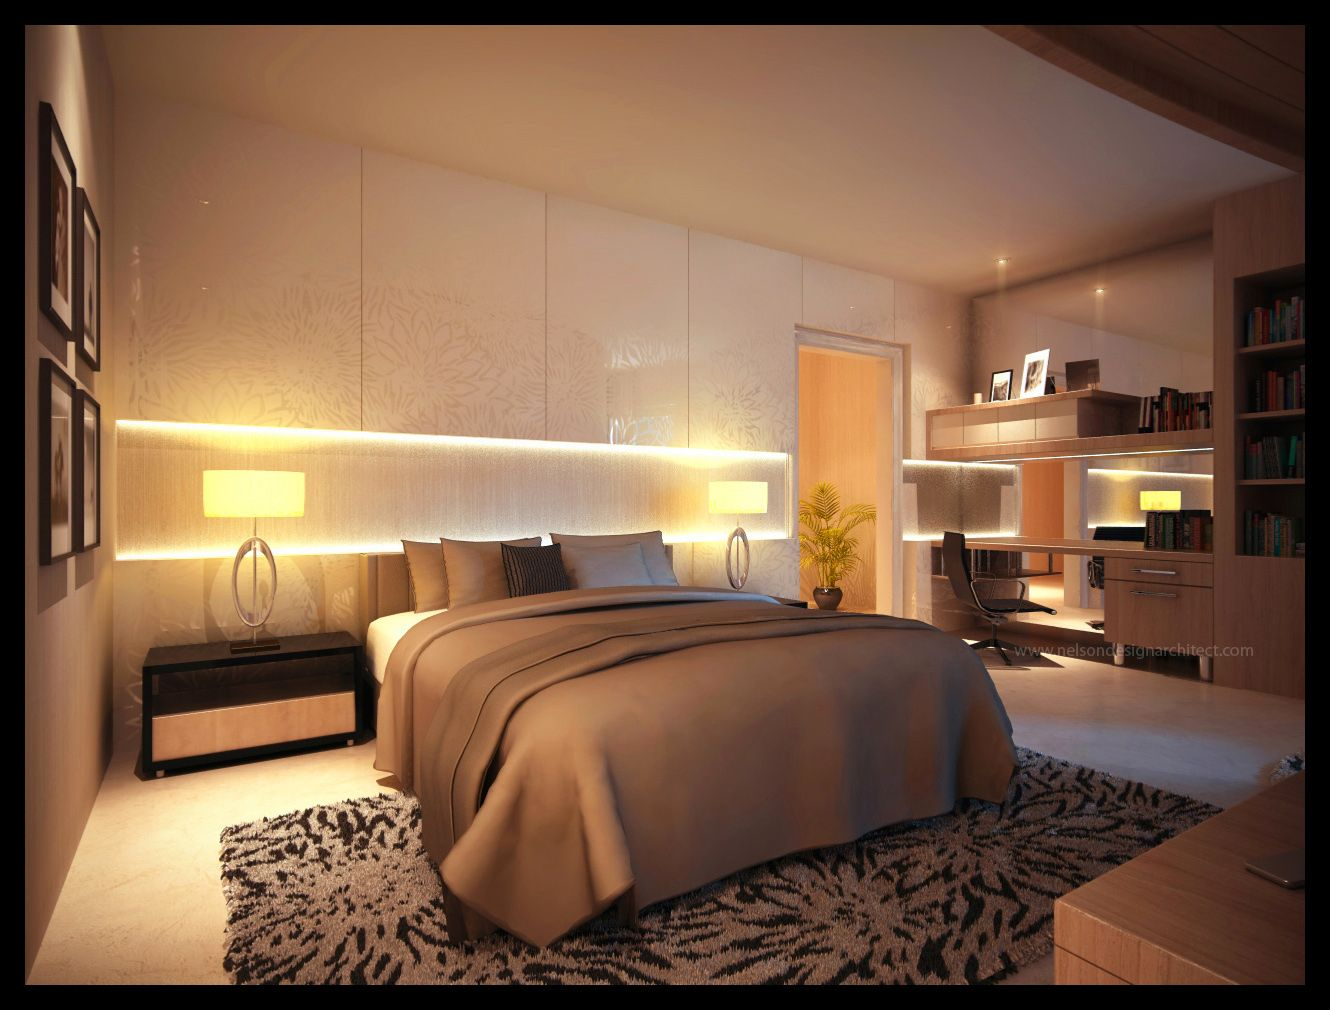 Pictures Of Bedroom Designs ideas for bedrooms 11 | bedrooms | pinterest | bedrooms, luxury